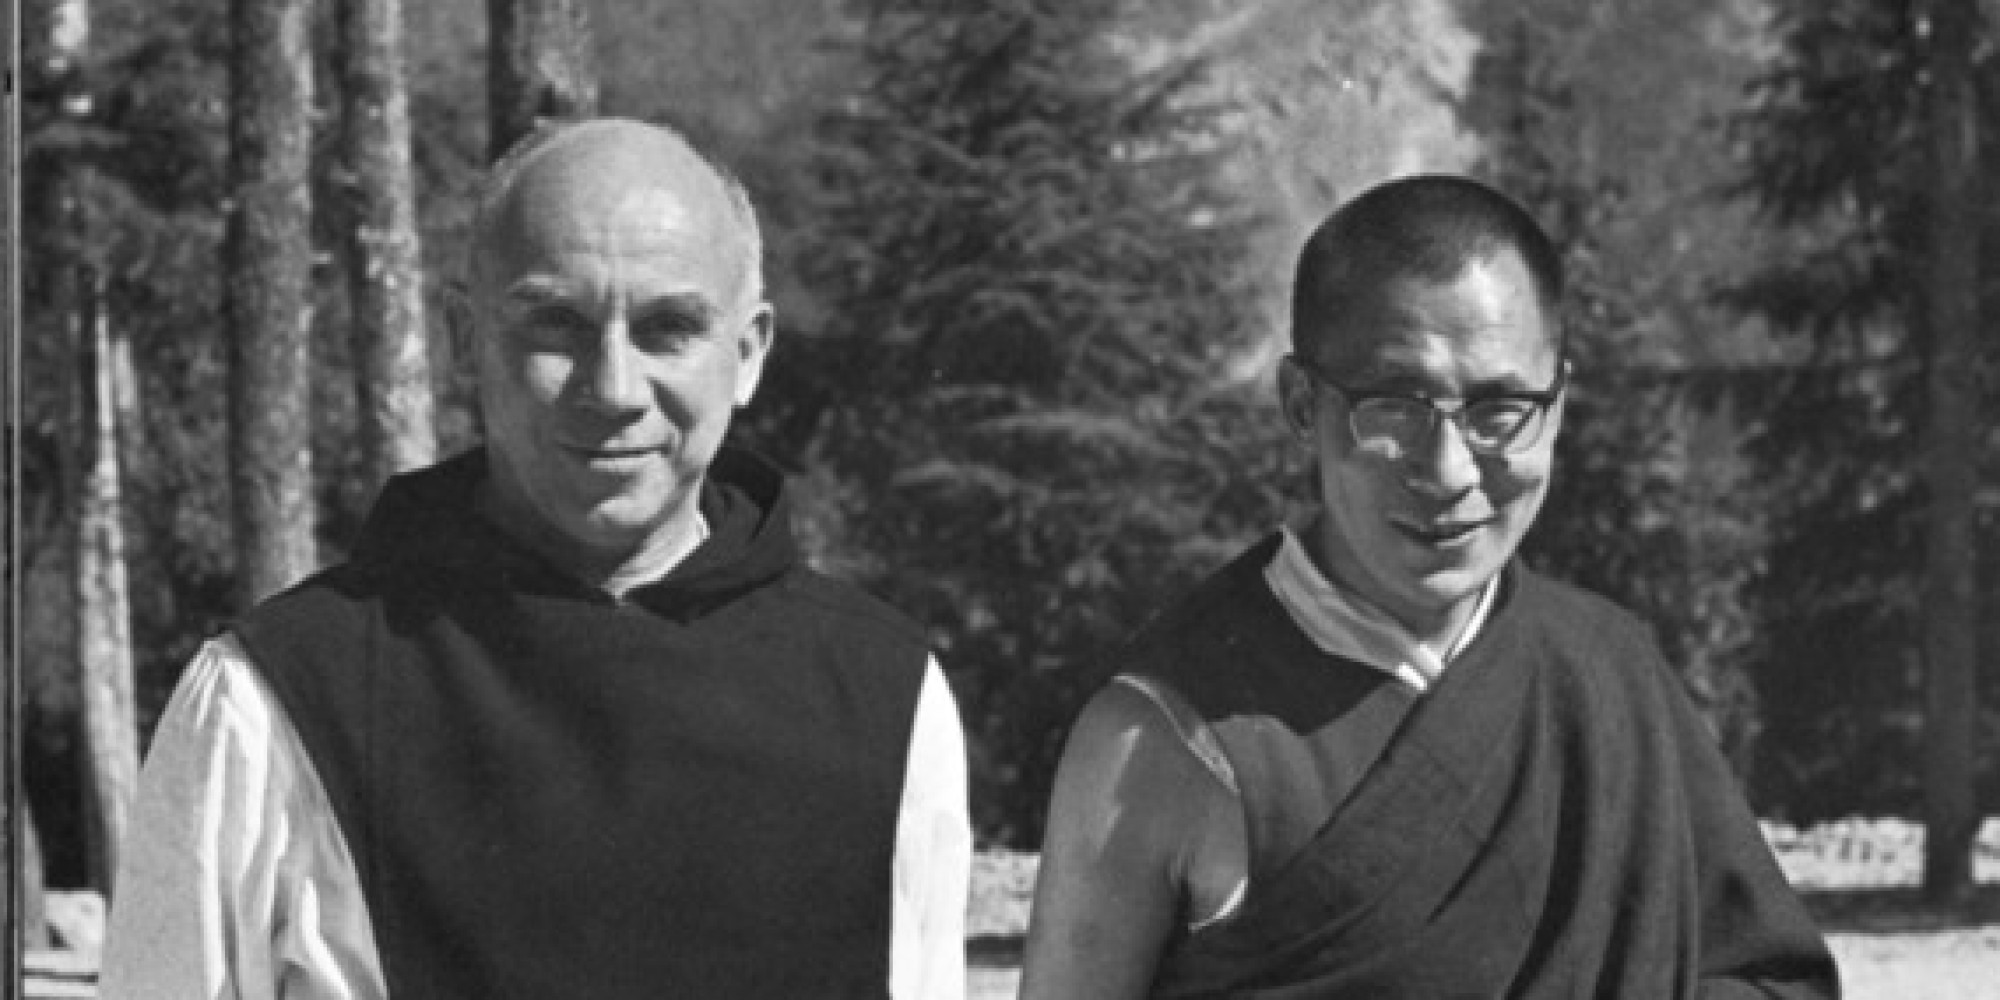 dalai lama essay images about dalai lama wild women peace and  the dalai lama from a catholic perspective by alexander norman merton dalailama jpg